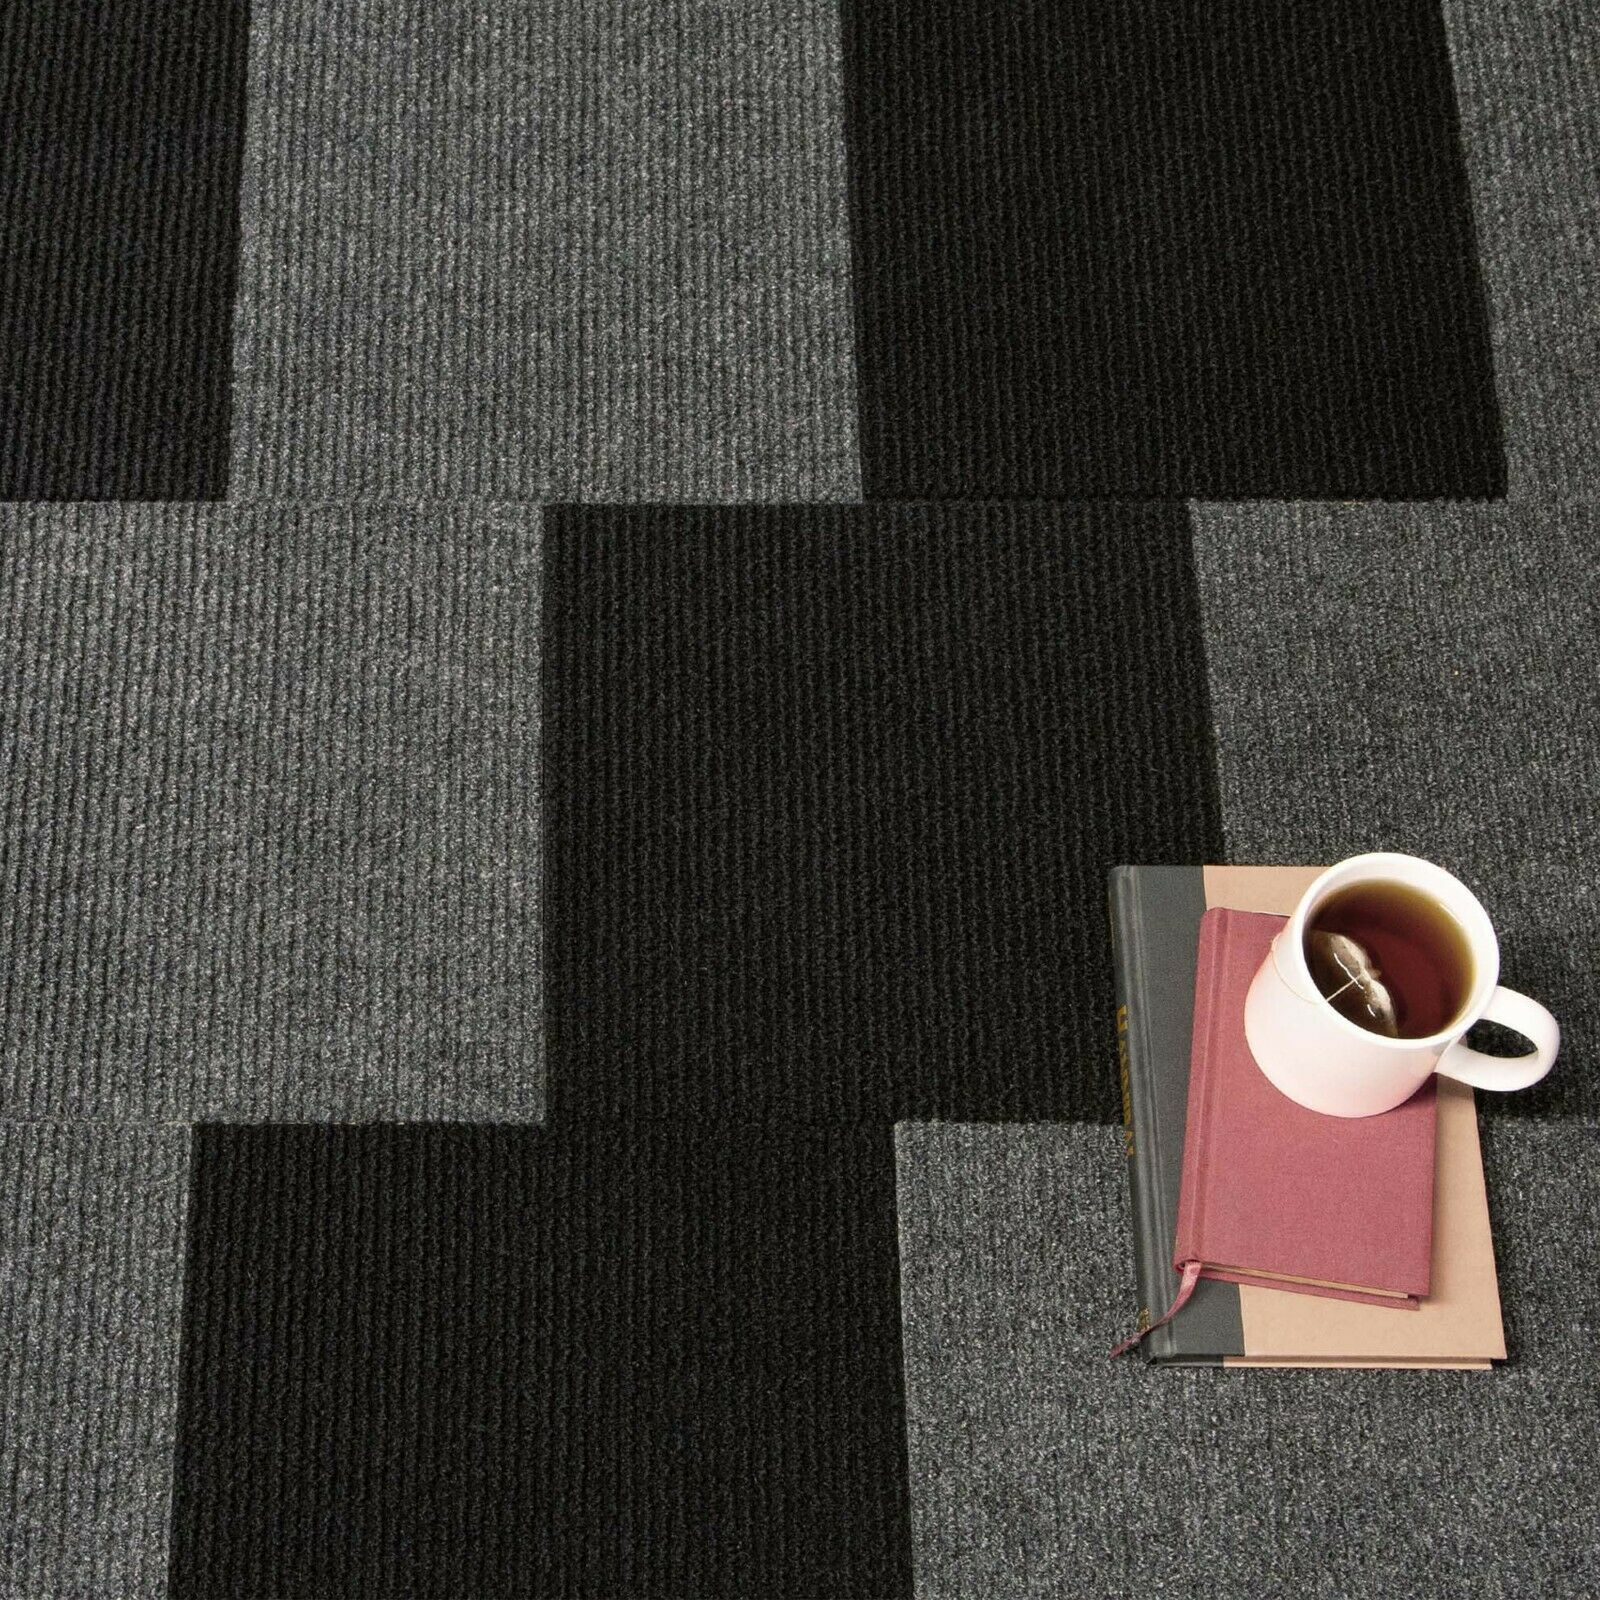 1 Tile - 1 Sqft, Black IncStores Berber Carpet Tiles